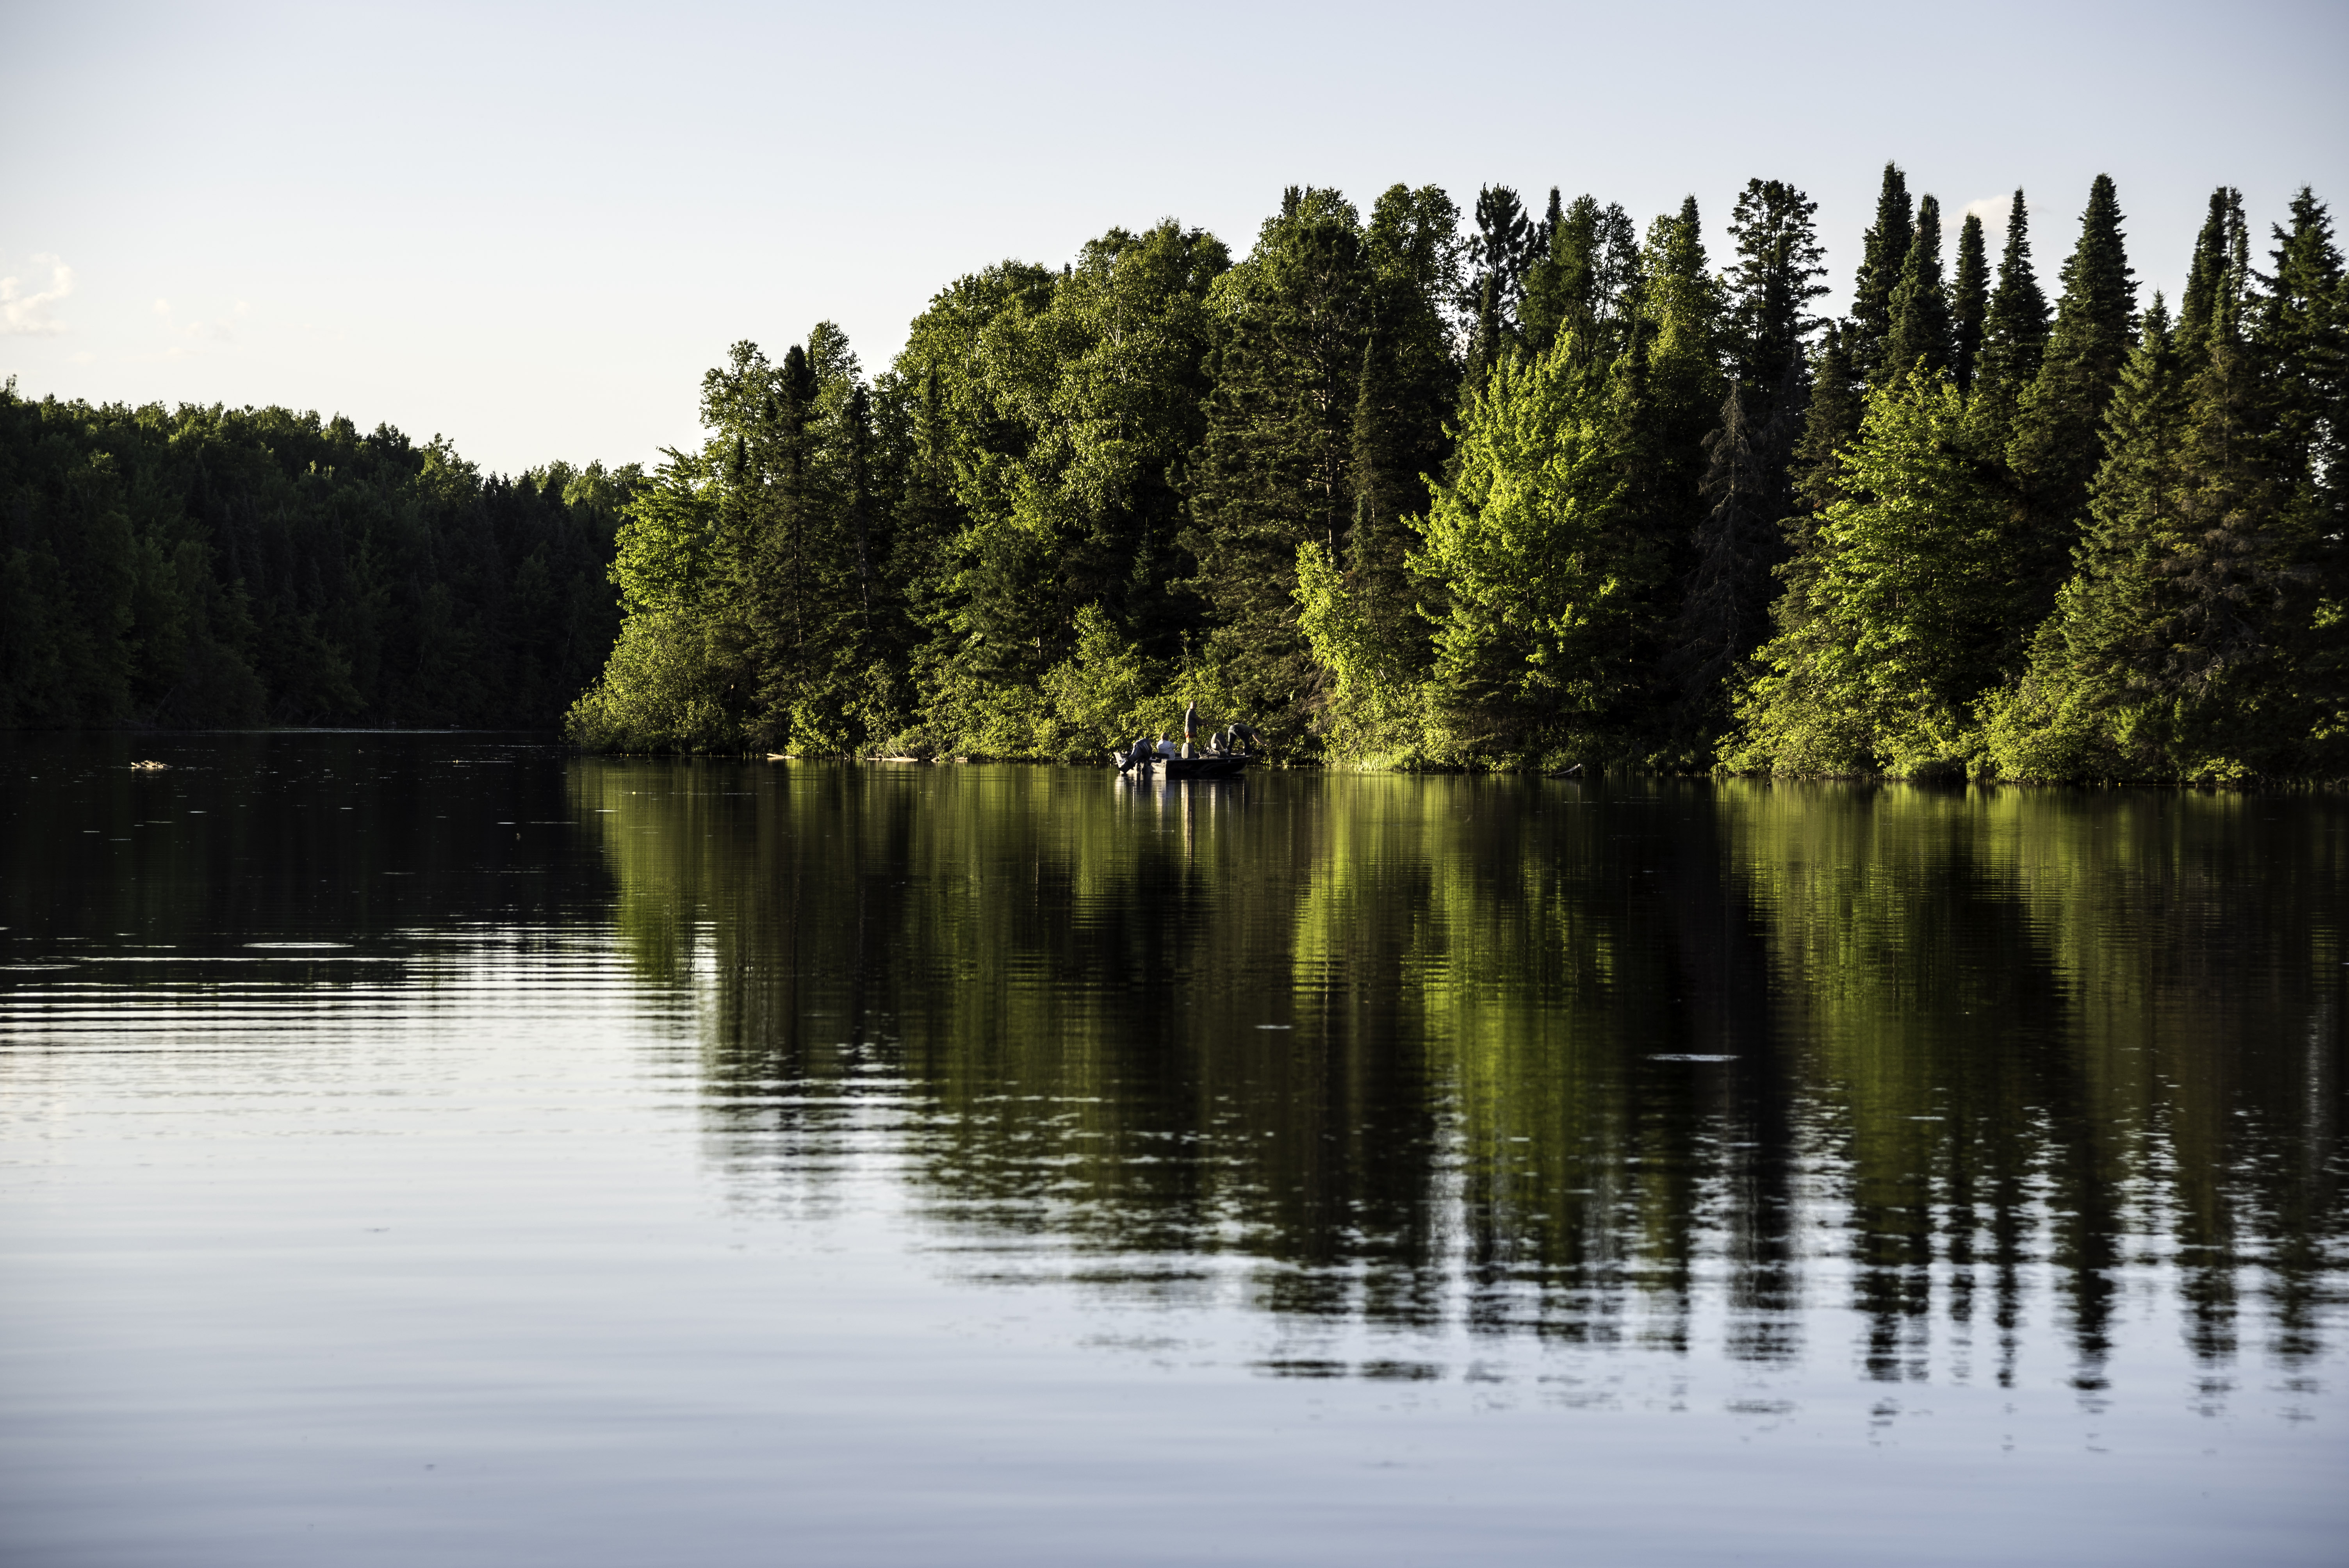 Fishing Boat On Day Lake In Chequamegon National Forest Wisconsin Image Free Stock Photo